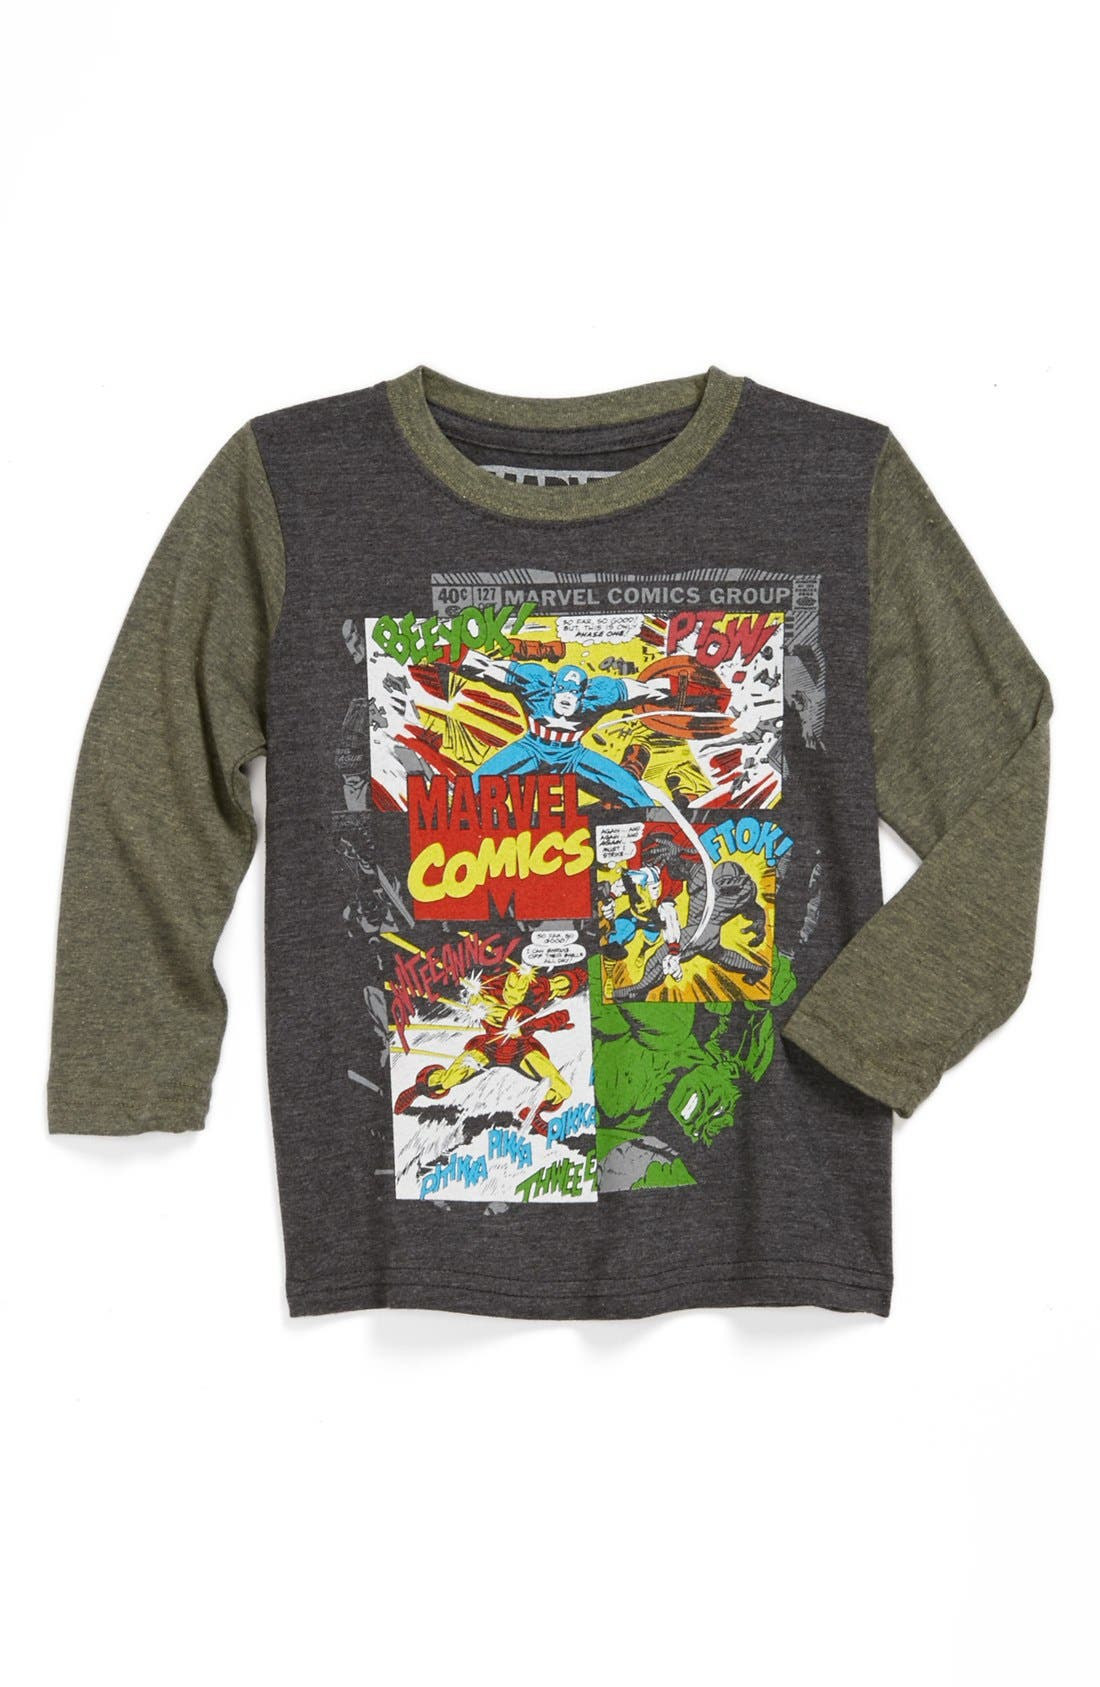 Main Image - Jem 'Marvel Comics™ Group' Long Sleeve T-Shirt (Toddler Boys)